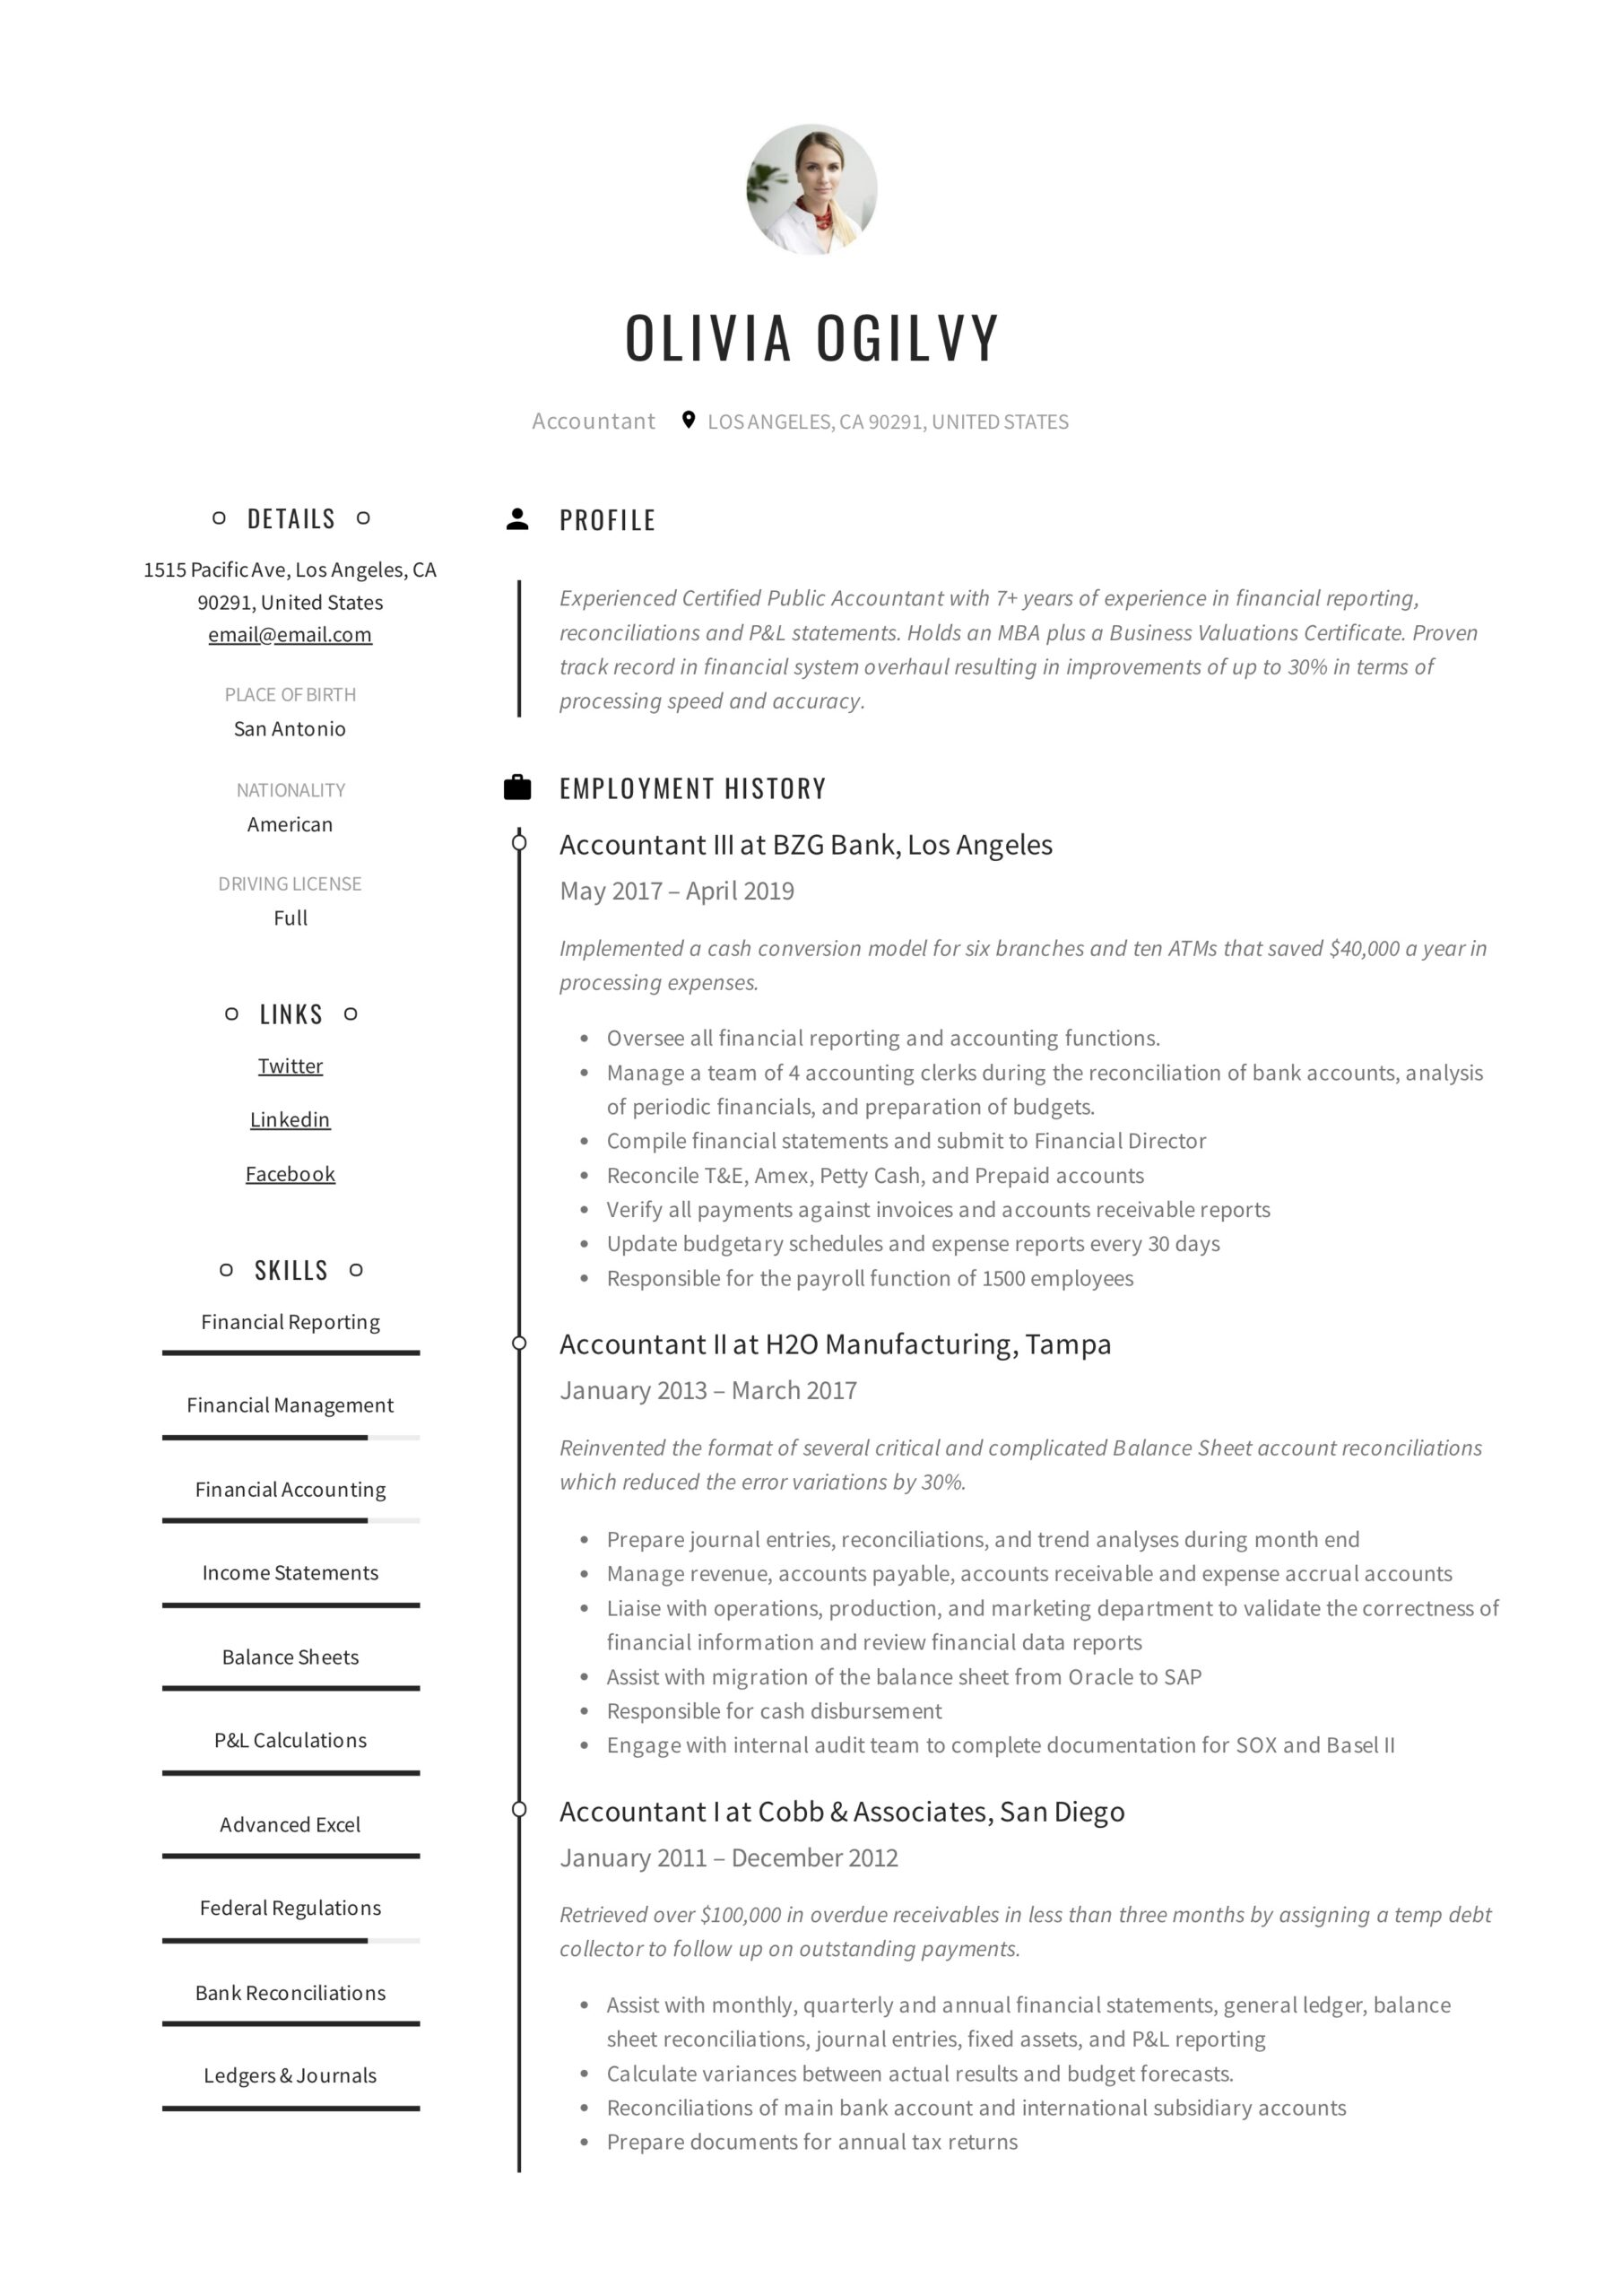 accounting resume writing services service olivia ogilvy accountant architectural Resume Accounting Resume Writing Services